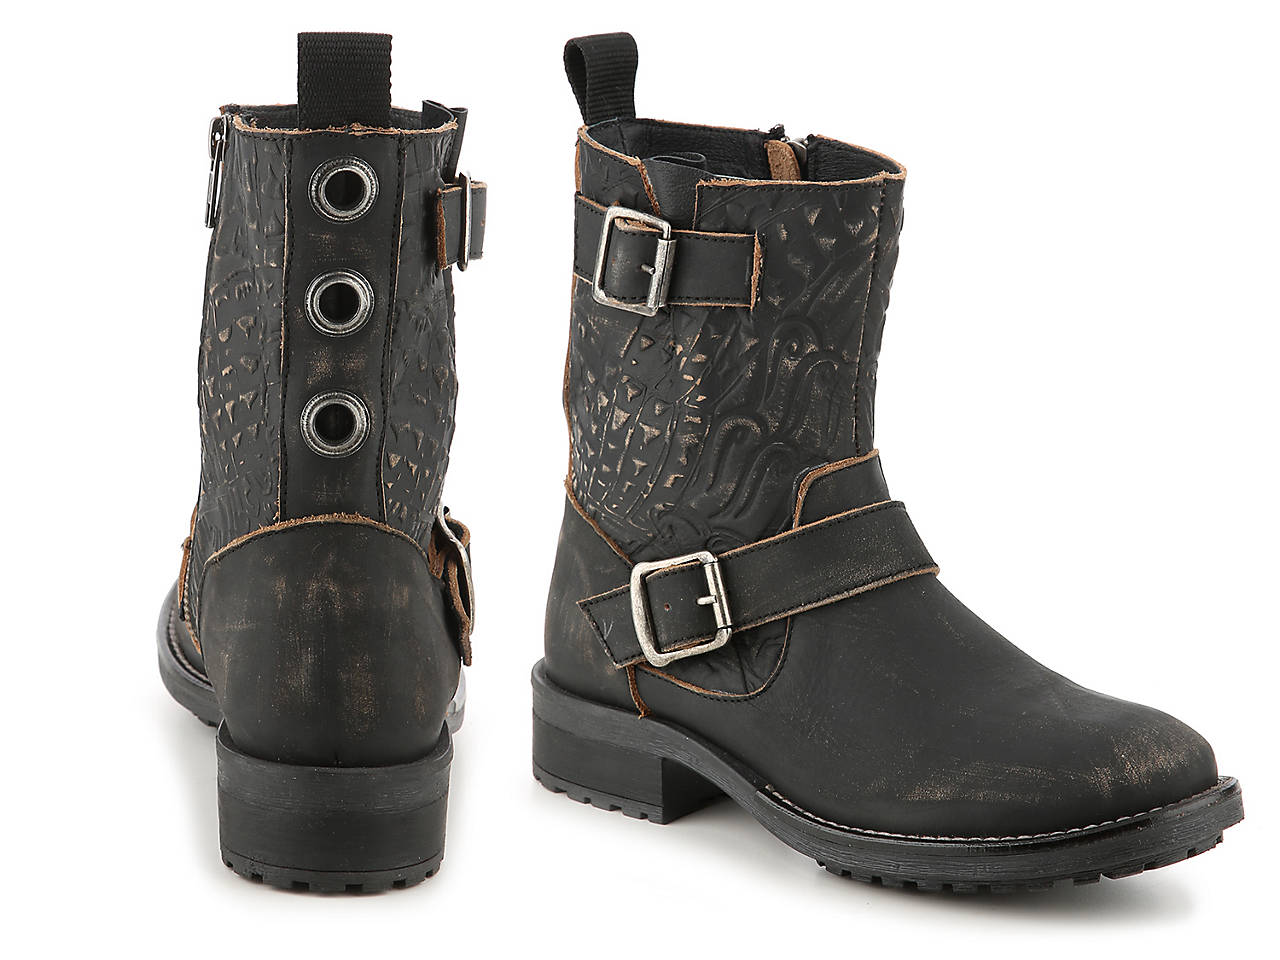 official supplier buy real shop for authentic Rocky Motorcycle Bootie